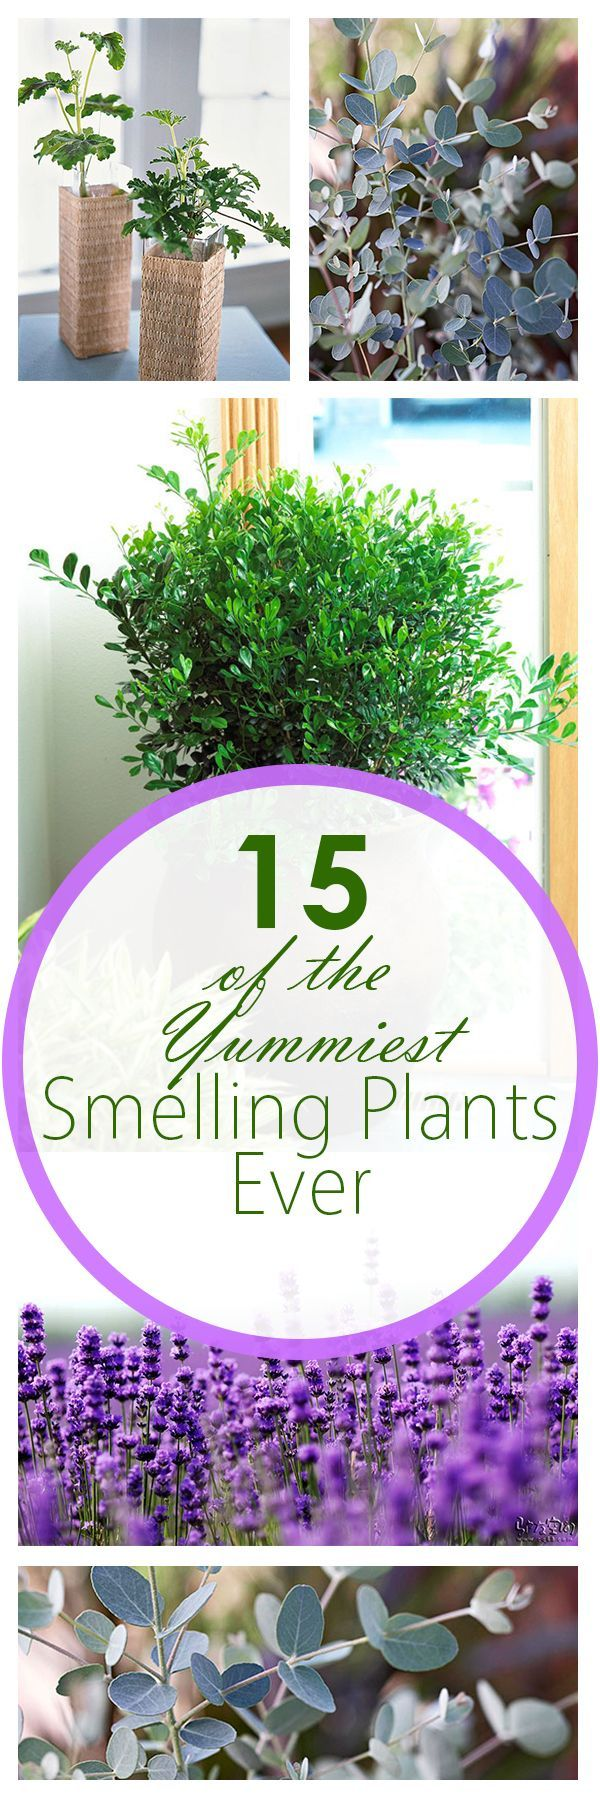 Delicious smelling plants, lovely smelling plants, home gardening, popular pin, growing plants at home, indoor gardening, yummy smelling plants.